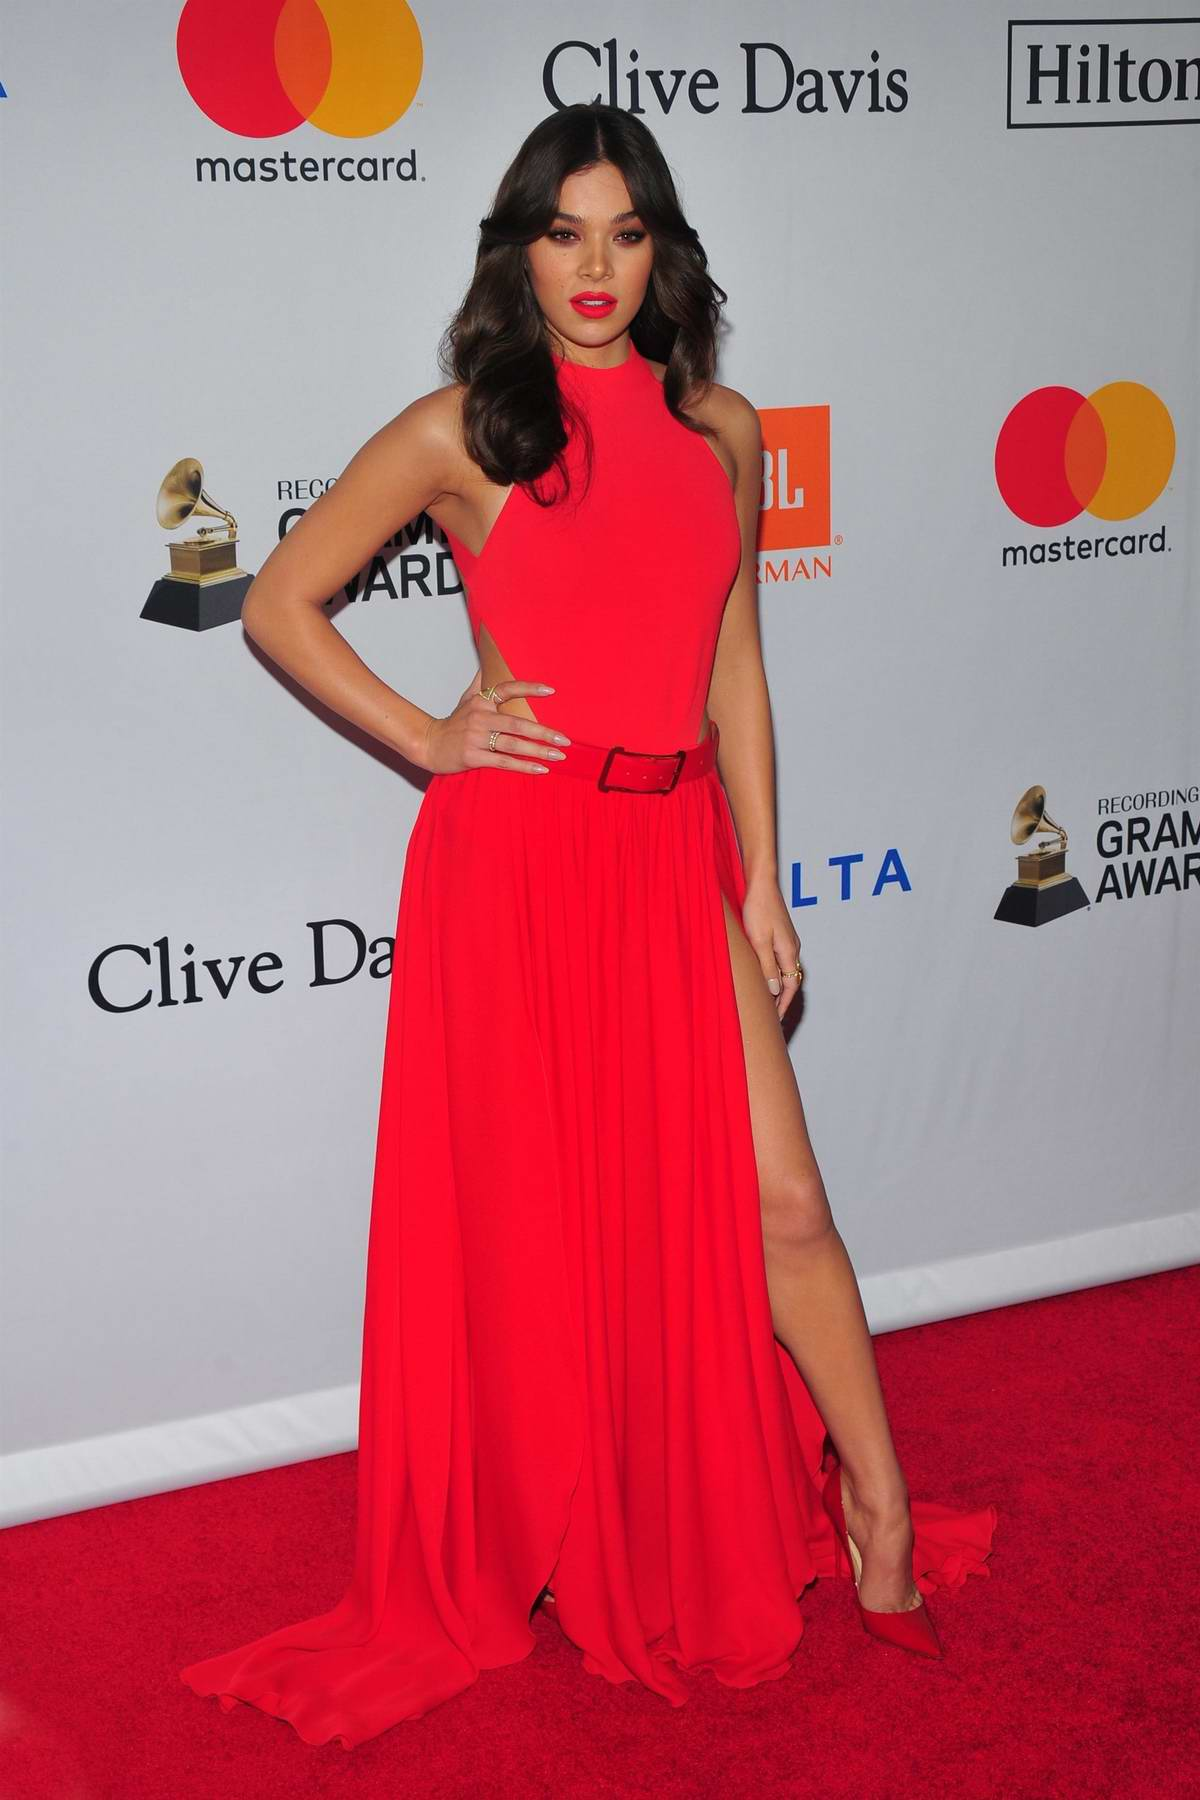 Hailee Steinfeld at the Clive Davis and Recording Academy Pre-Grammy Gala in New York City